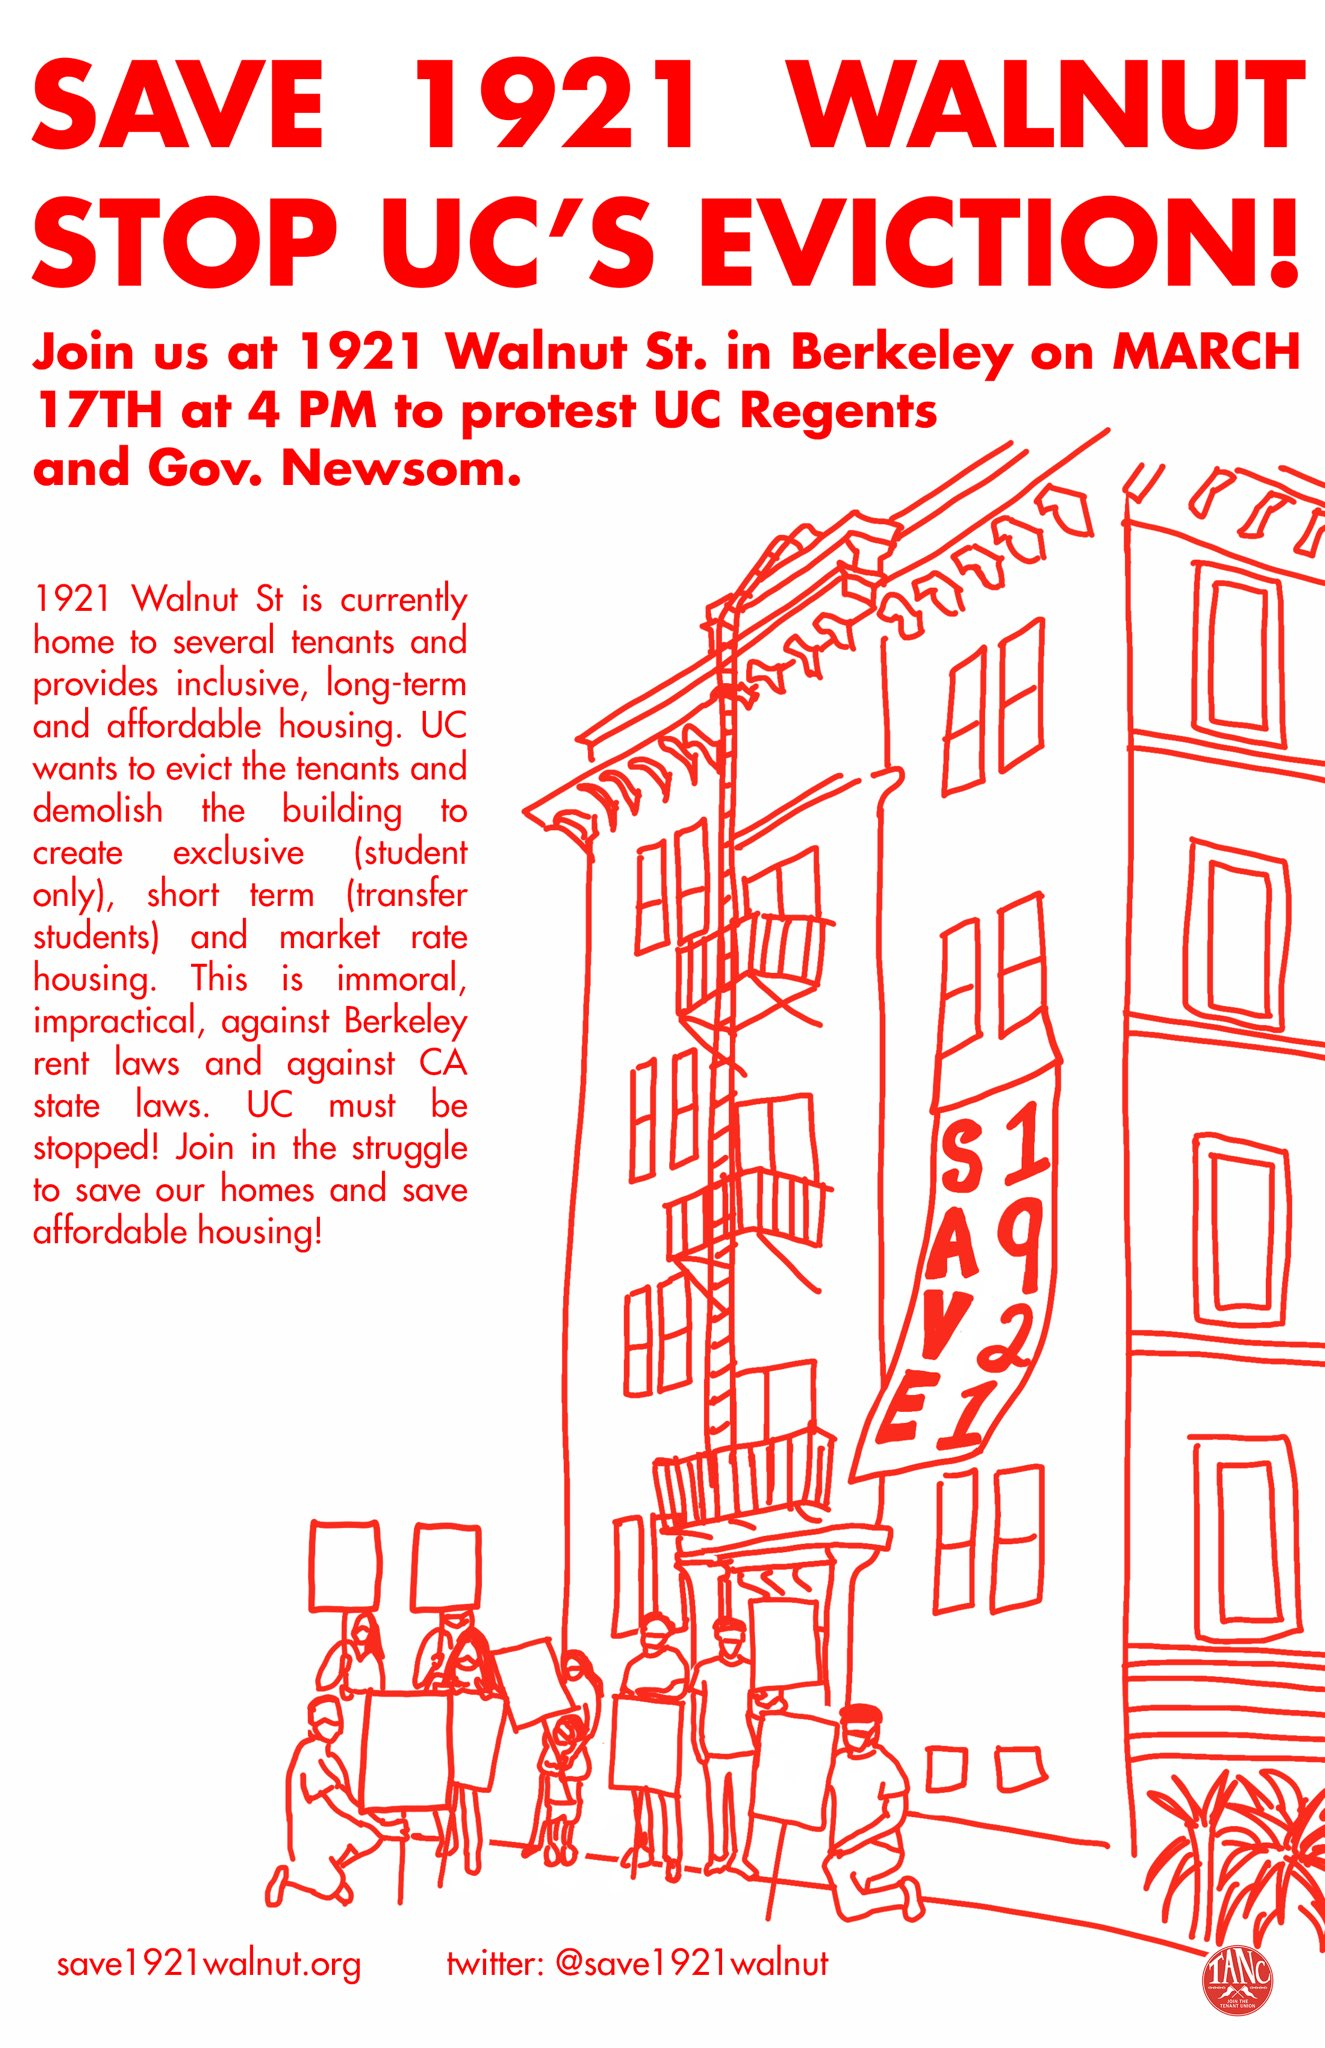 Stop UC's Eviction! @ 1921 Walnut Street